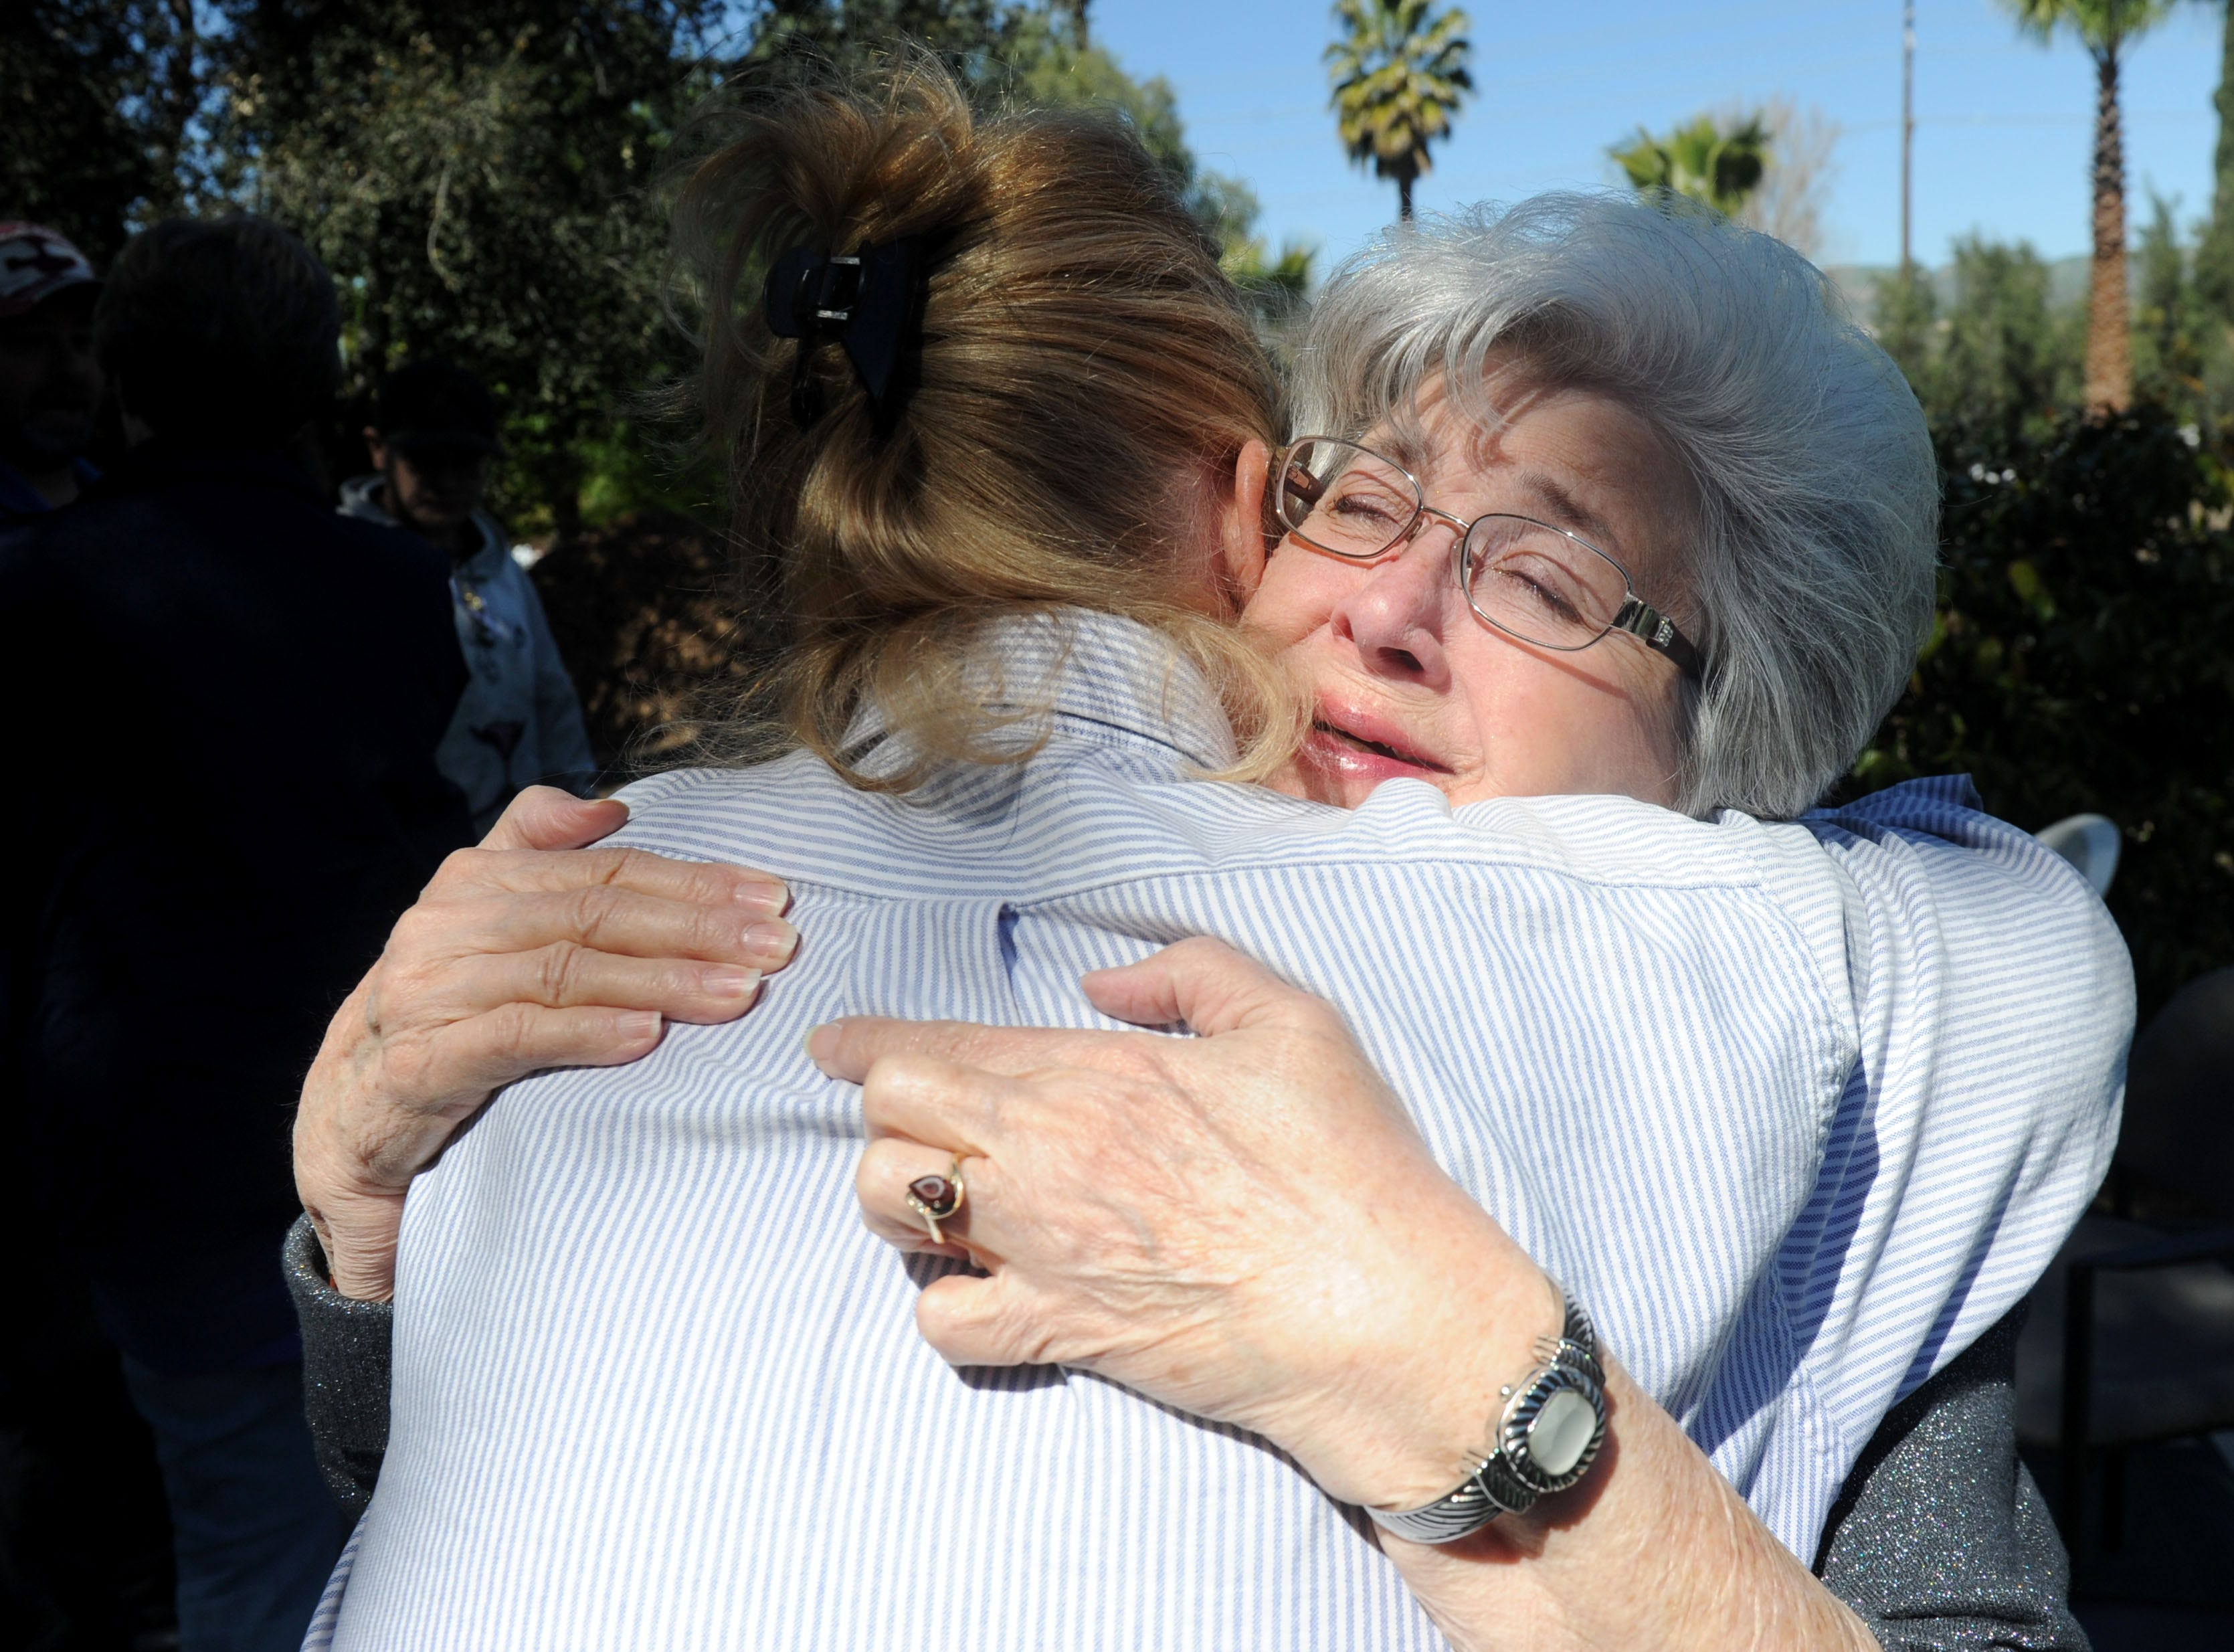 Sharon Heiser, a volunteer at the Simi Valley Samaritan Center, gets a hug from the Rev. Sarah Kitch of St. Francis of Assisi Episcopal Church. The women were among dozens of people at a memorial service Wednesday for Gerald Munyon.